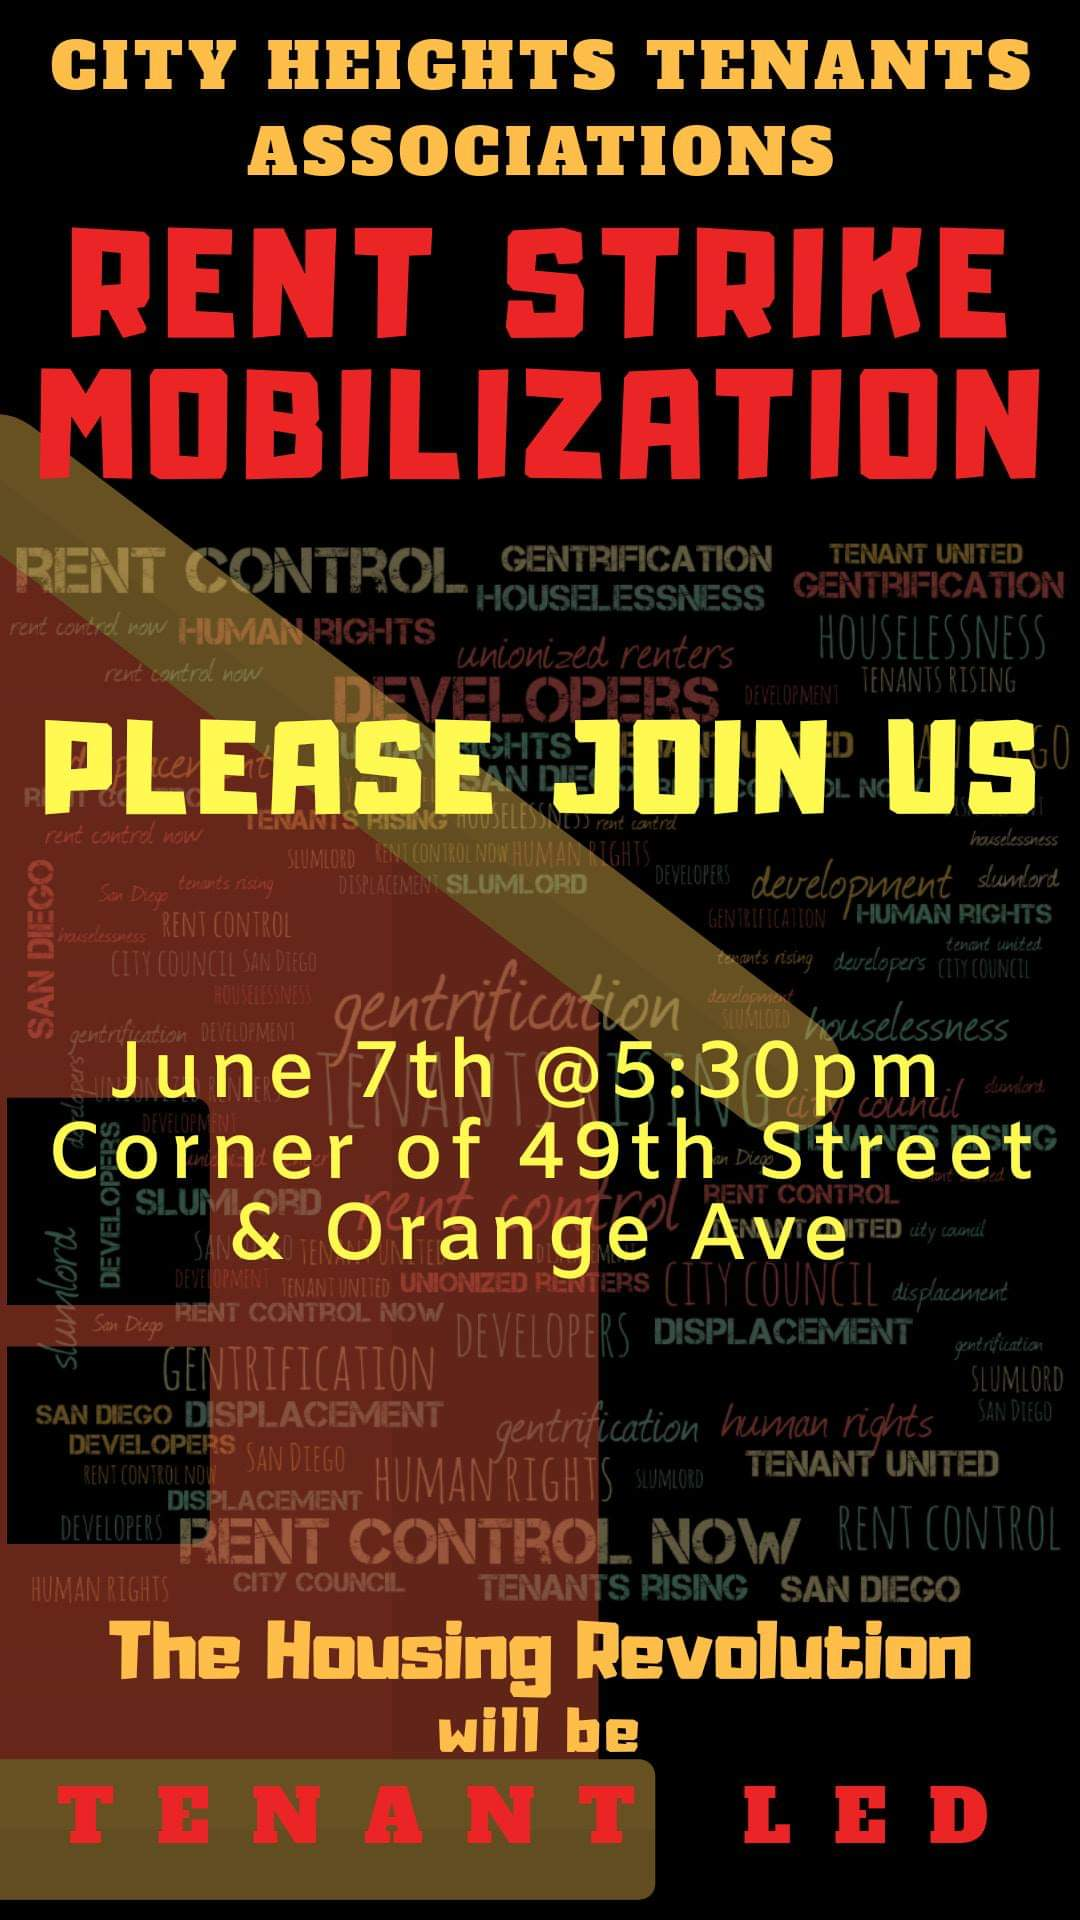 City Heights rent strike mobilization